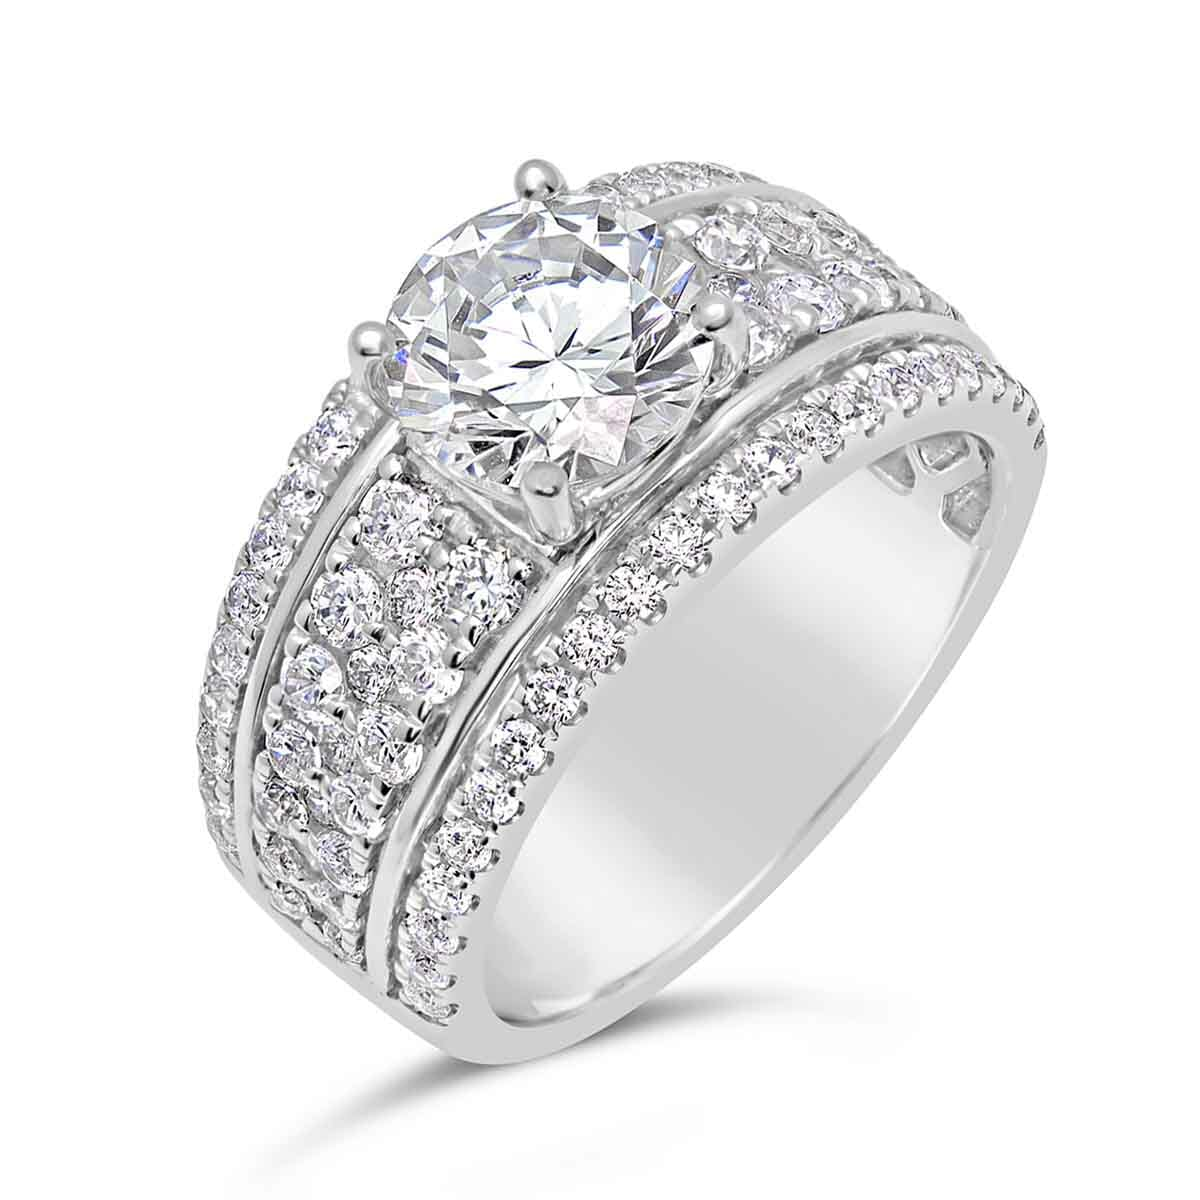 Diamond Engagement Ring With Wide Band The Diamond Guys Collection The Diamond Guys